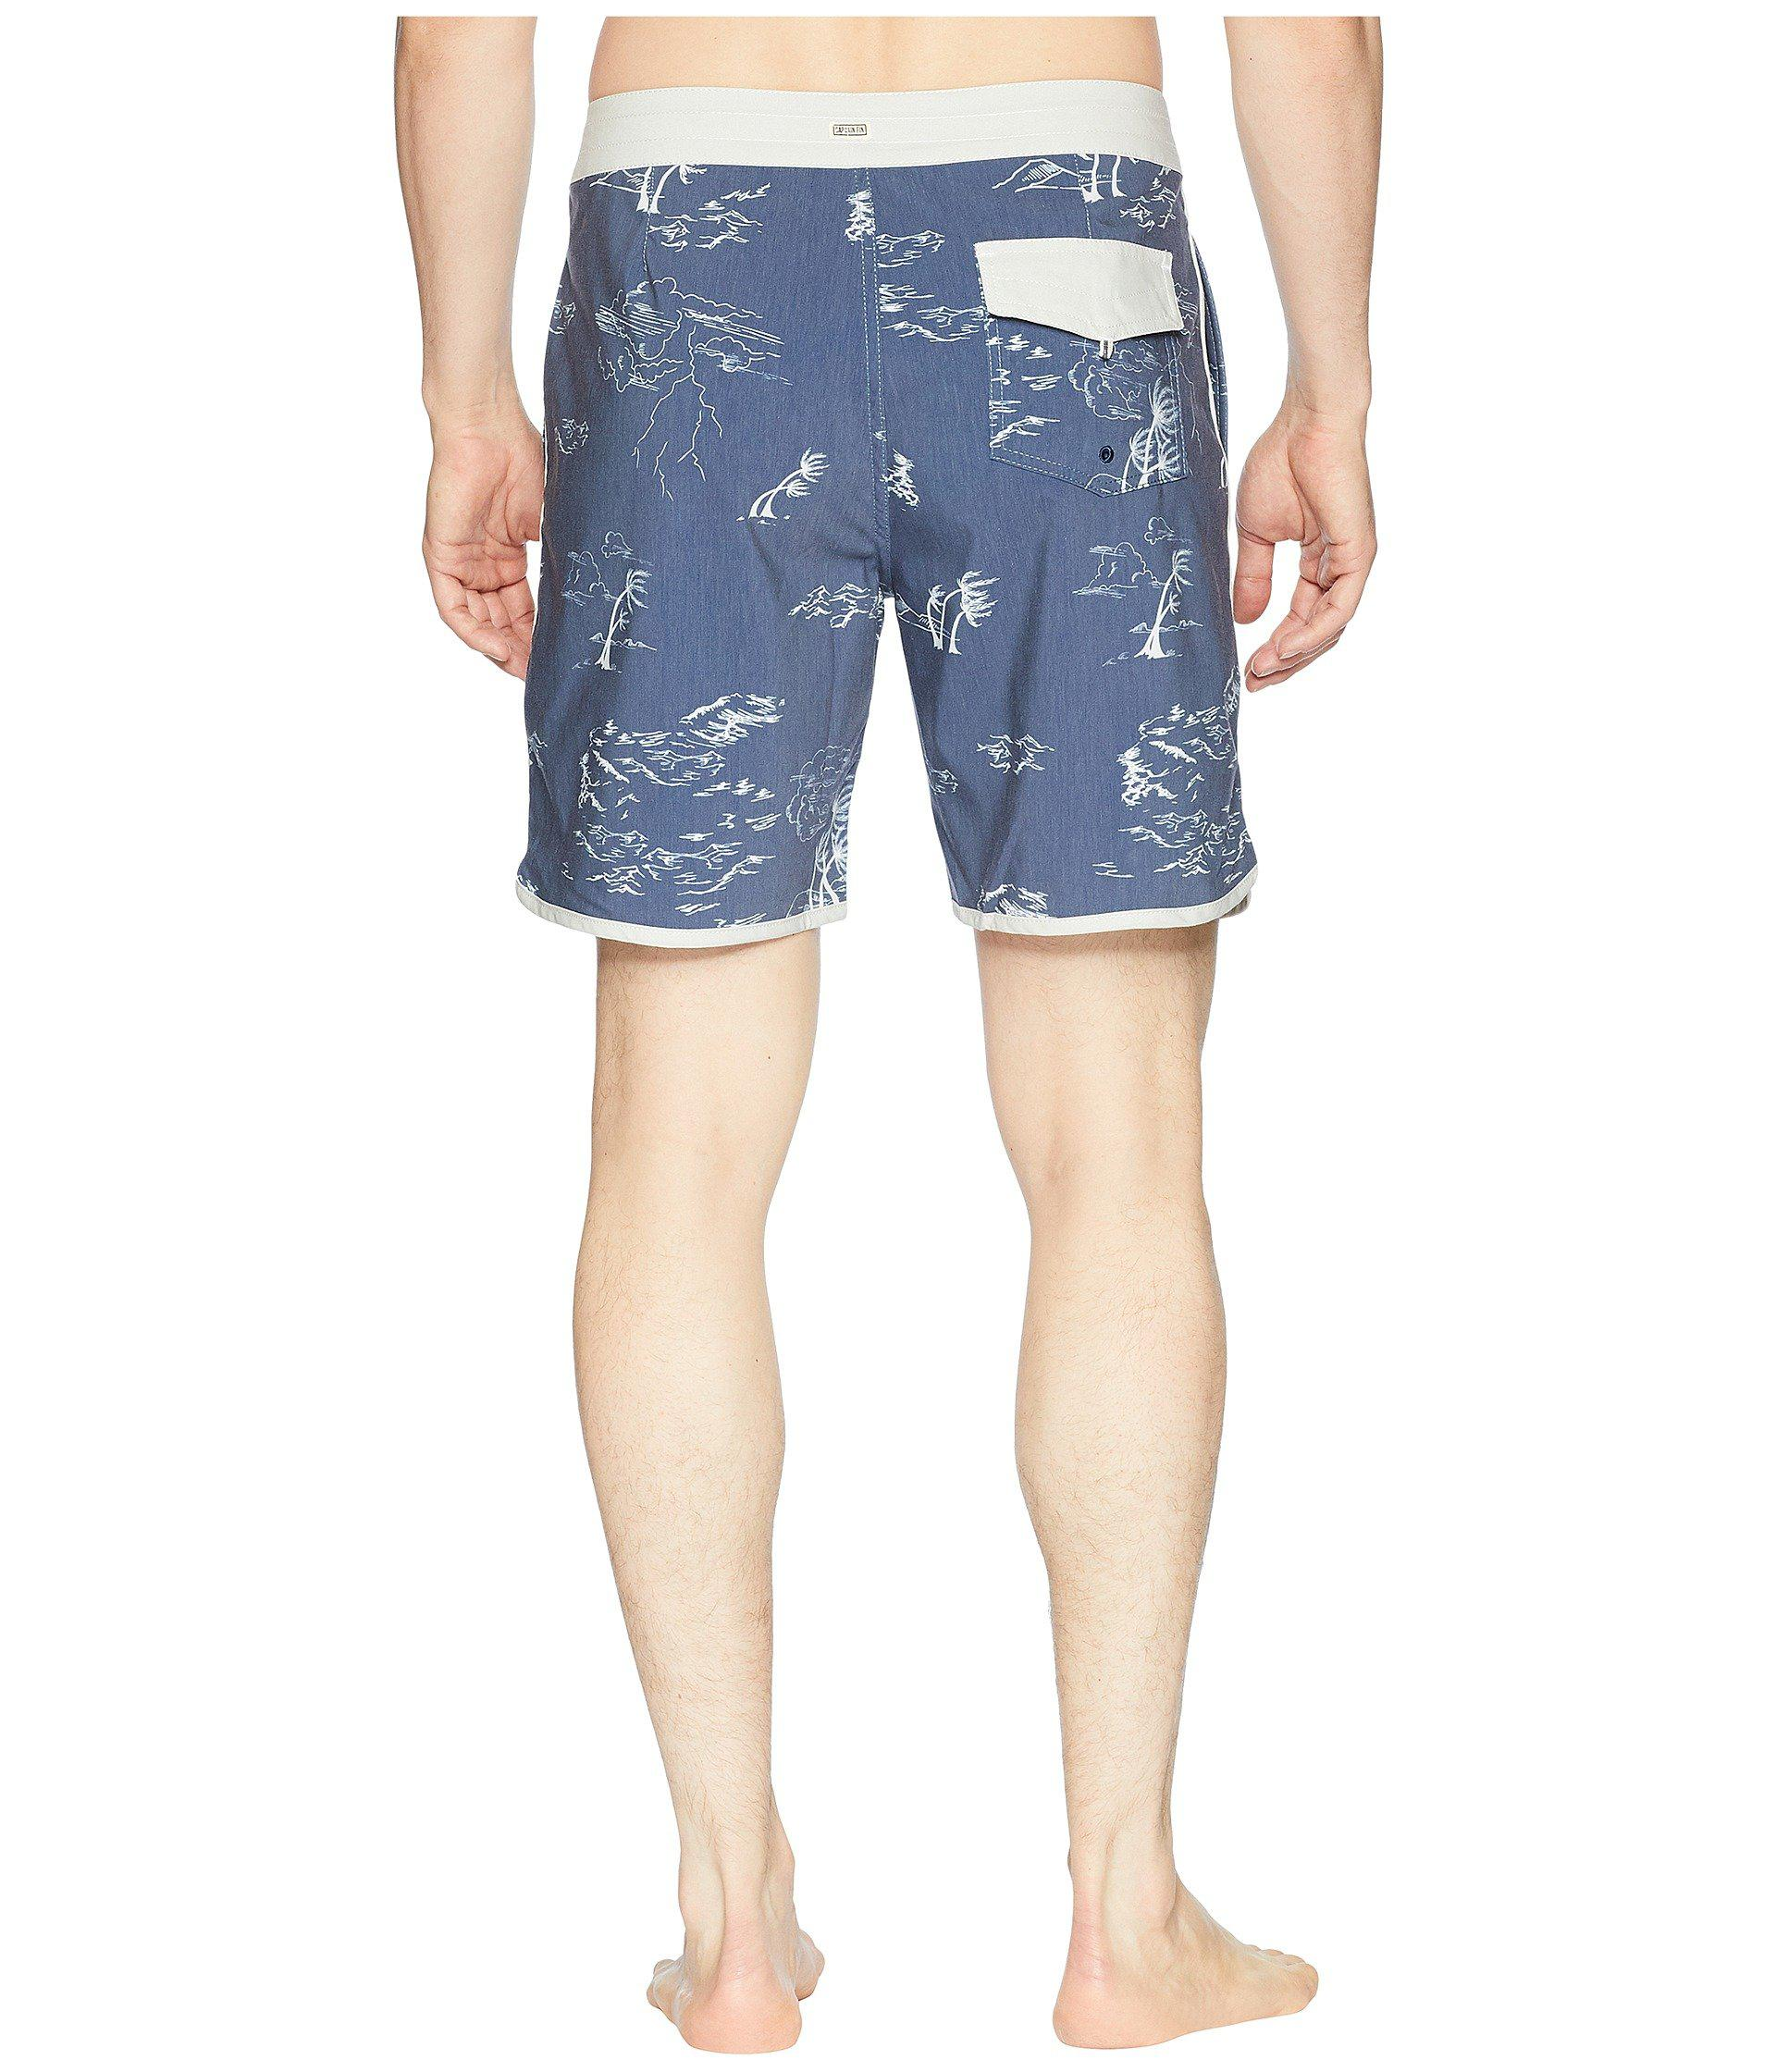 9c188b2fd3 Captain Fin Stormin The Sea Boardshorts in Blue for Men - Lyst